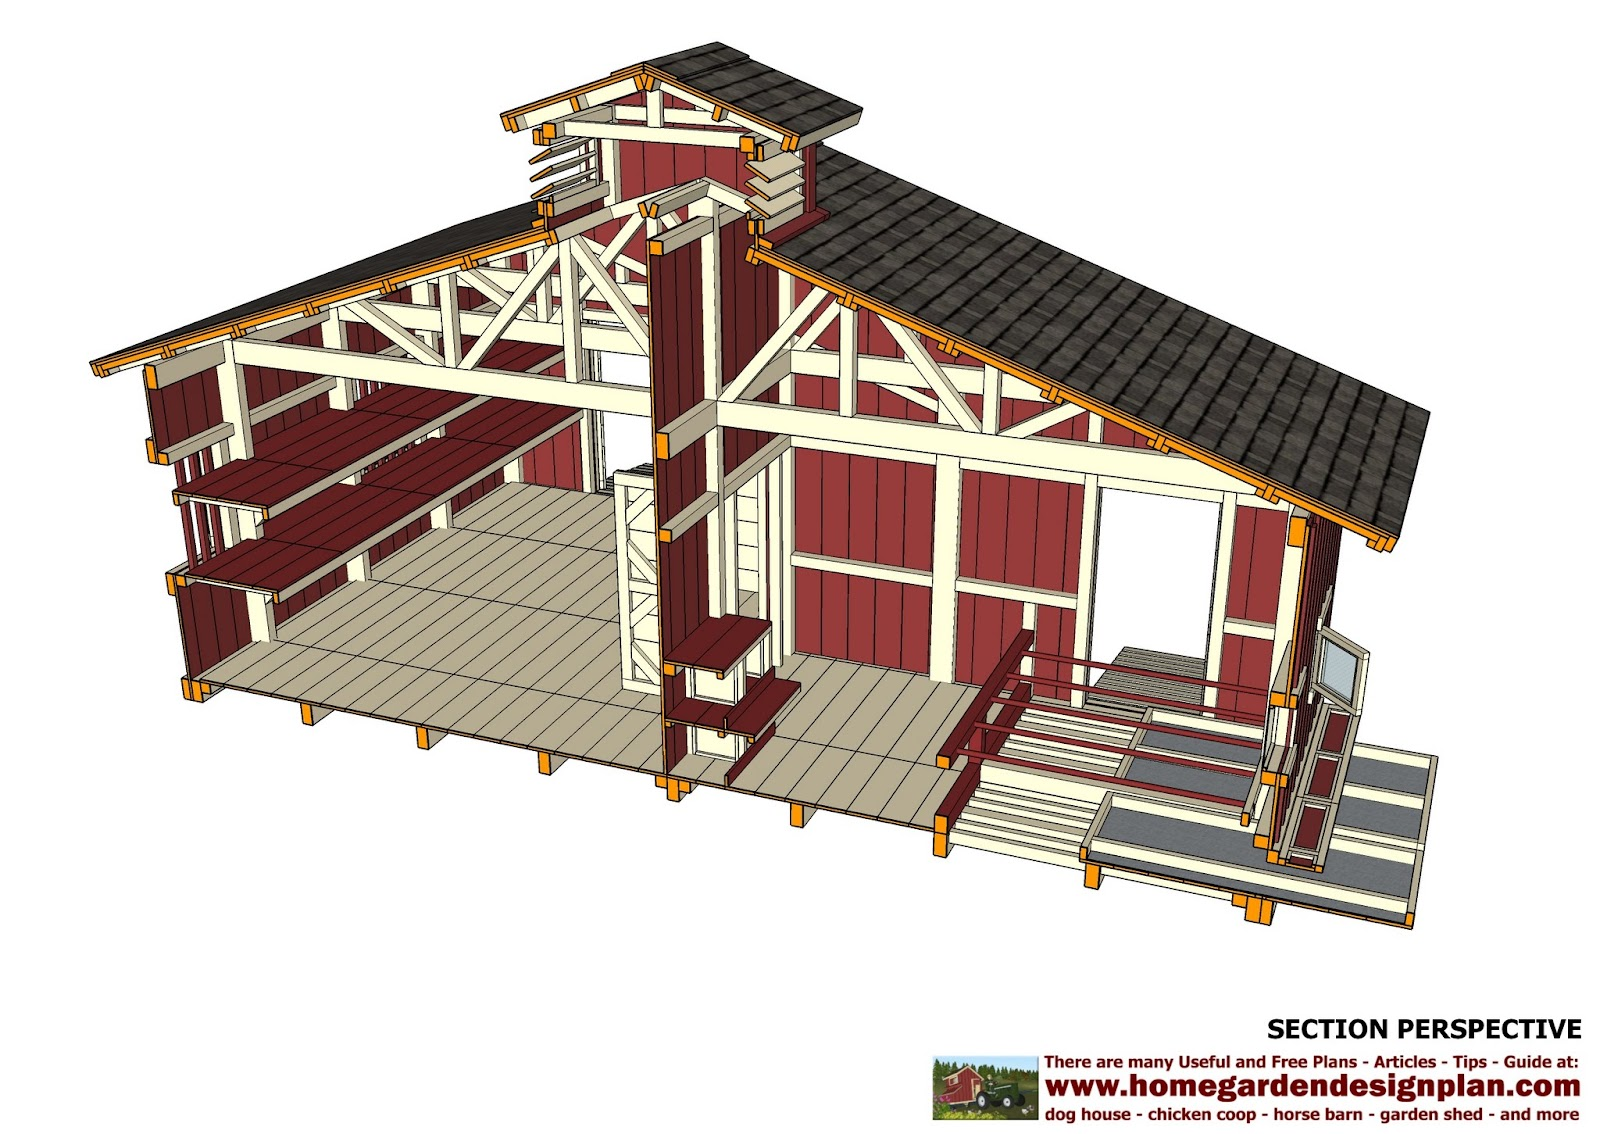 Free Storage Shed Plans 8 12 How To Build An Amish Shed – Garden Shed Designs Free Plans